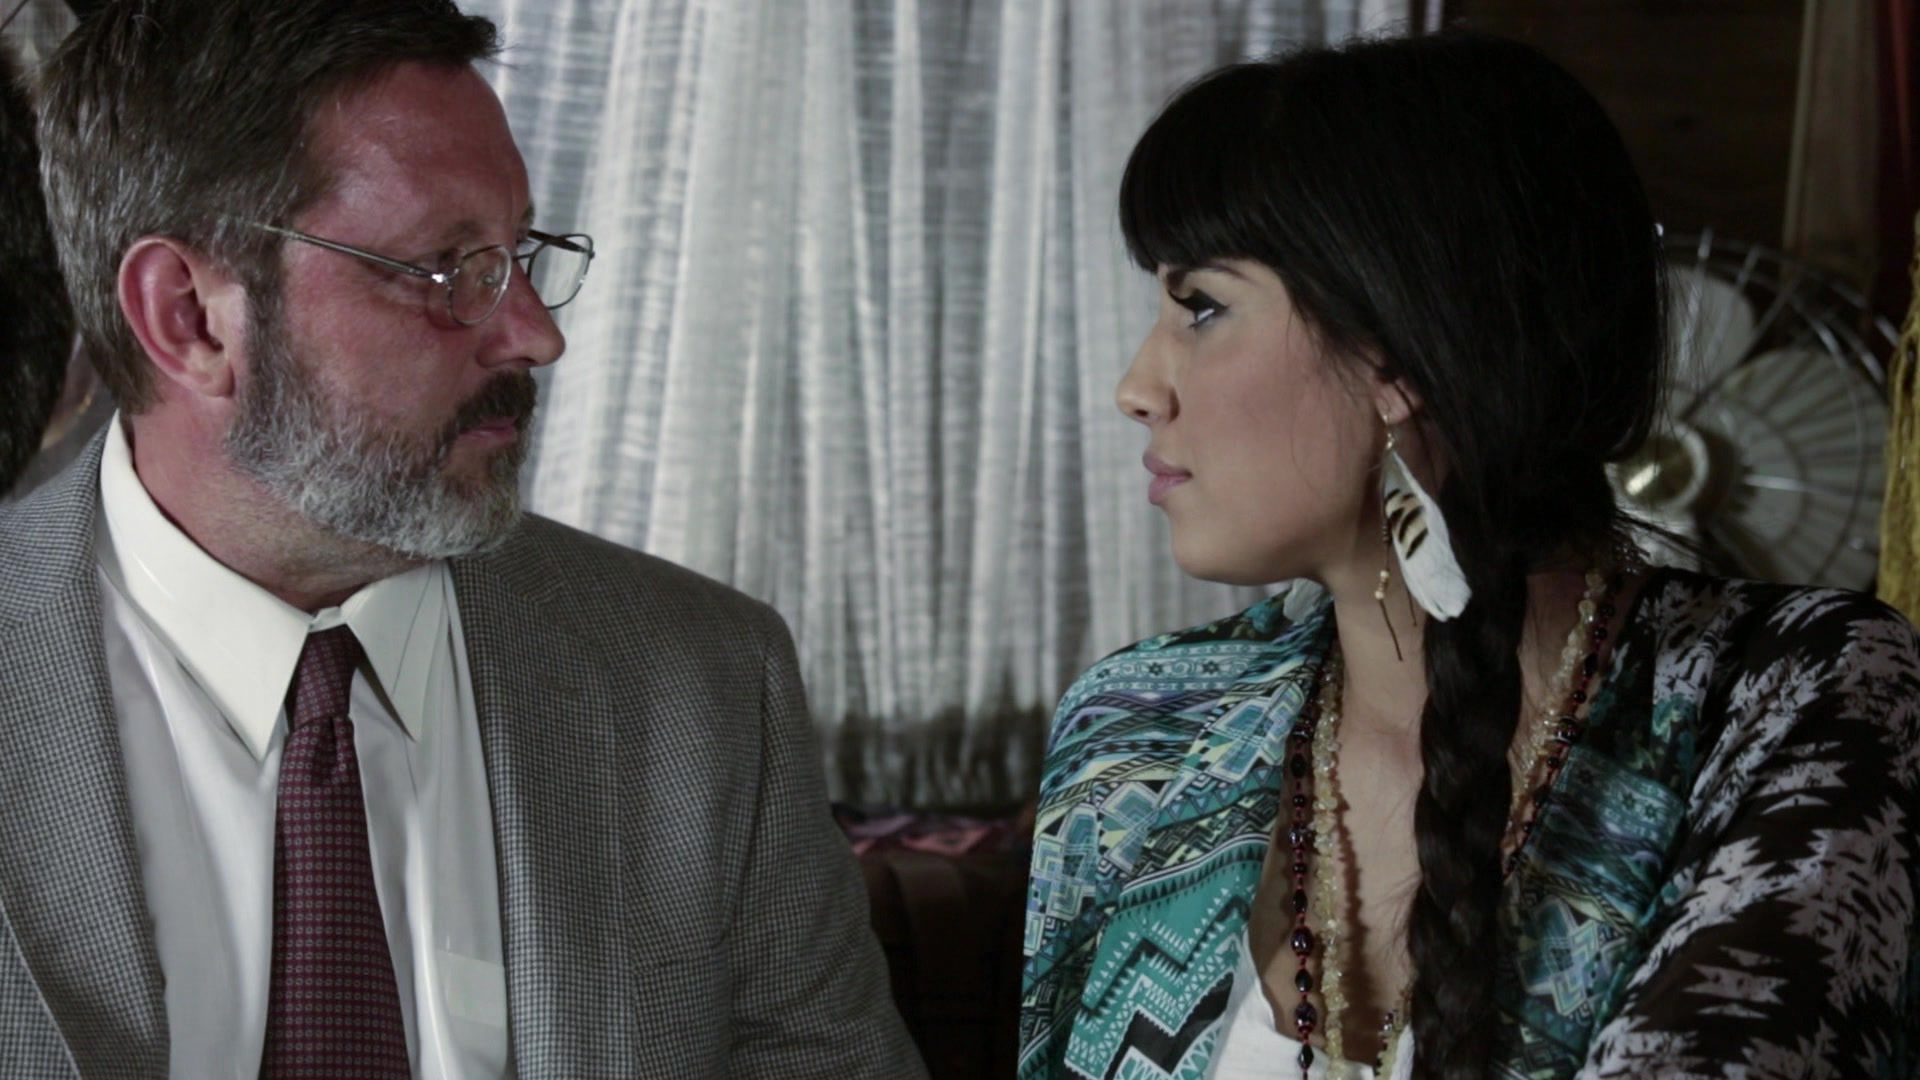 Scene with Brad Armstrong and Mercedes Carrera - image 2 out of 20